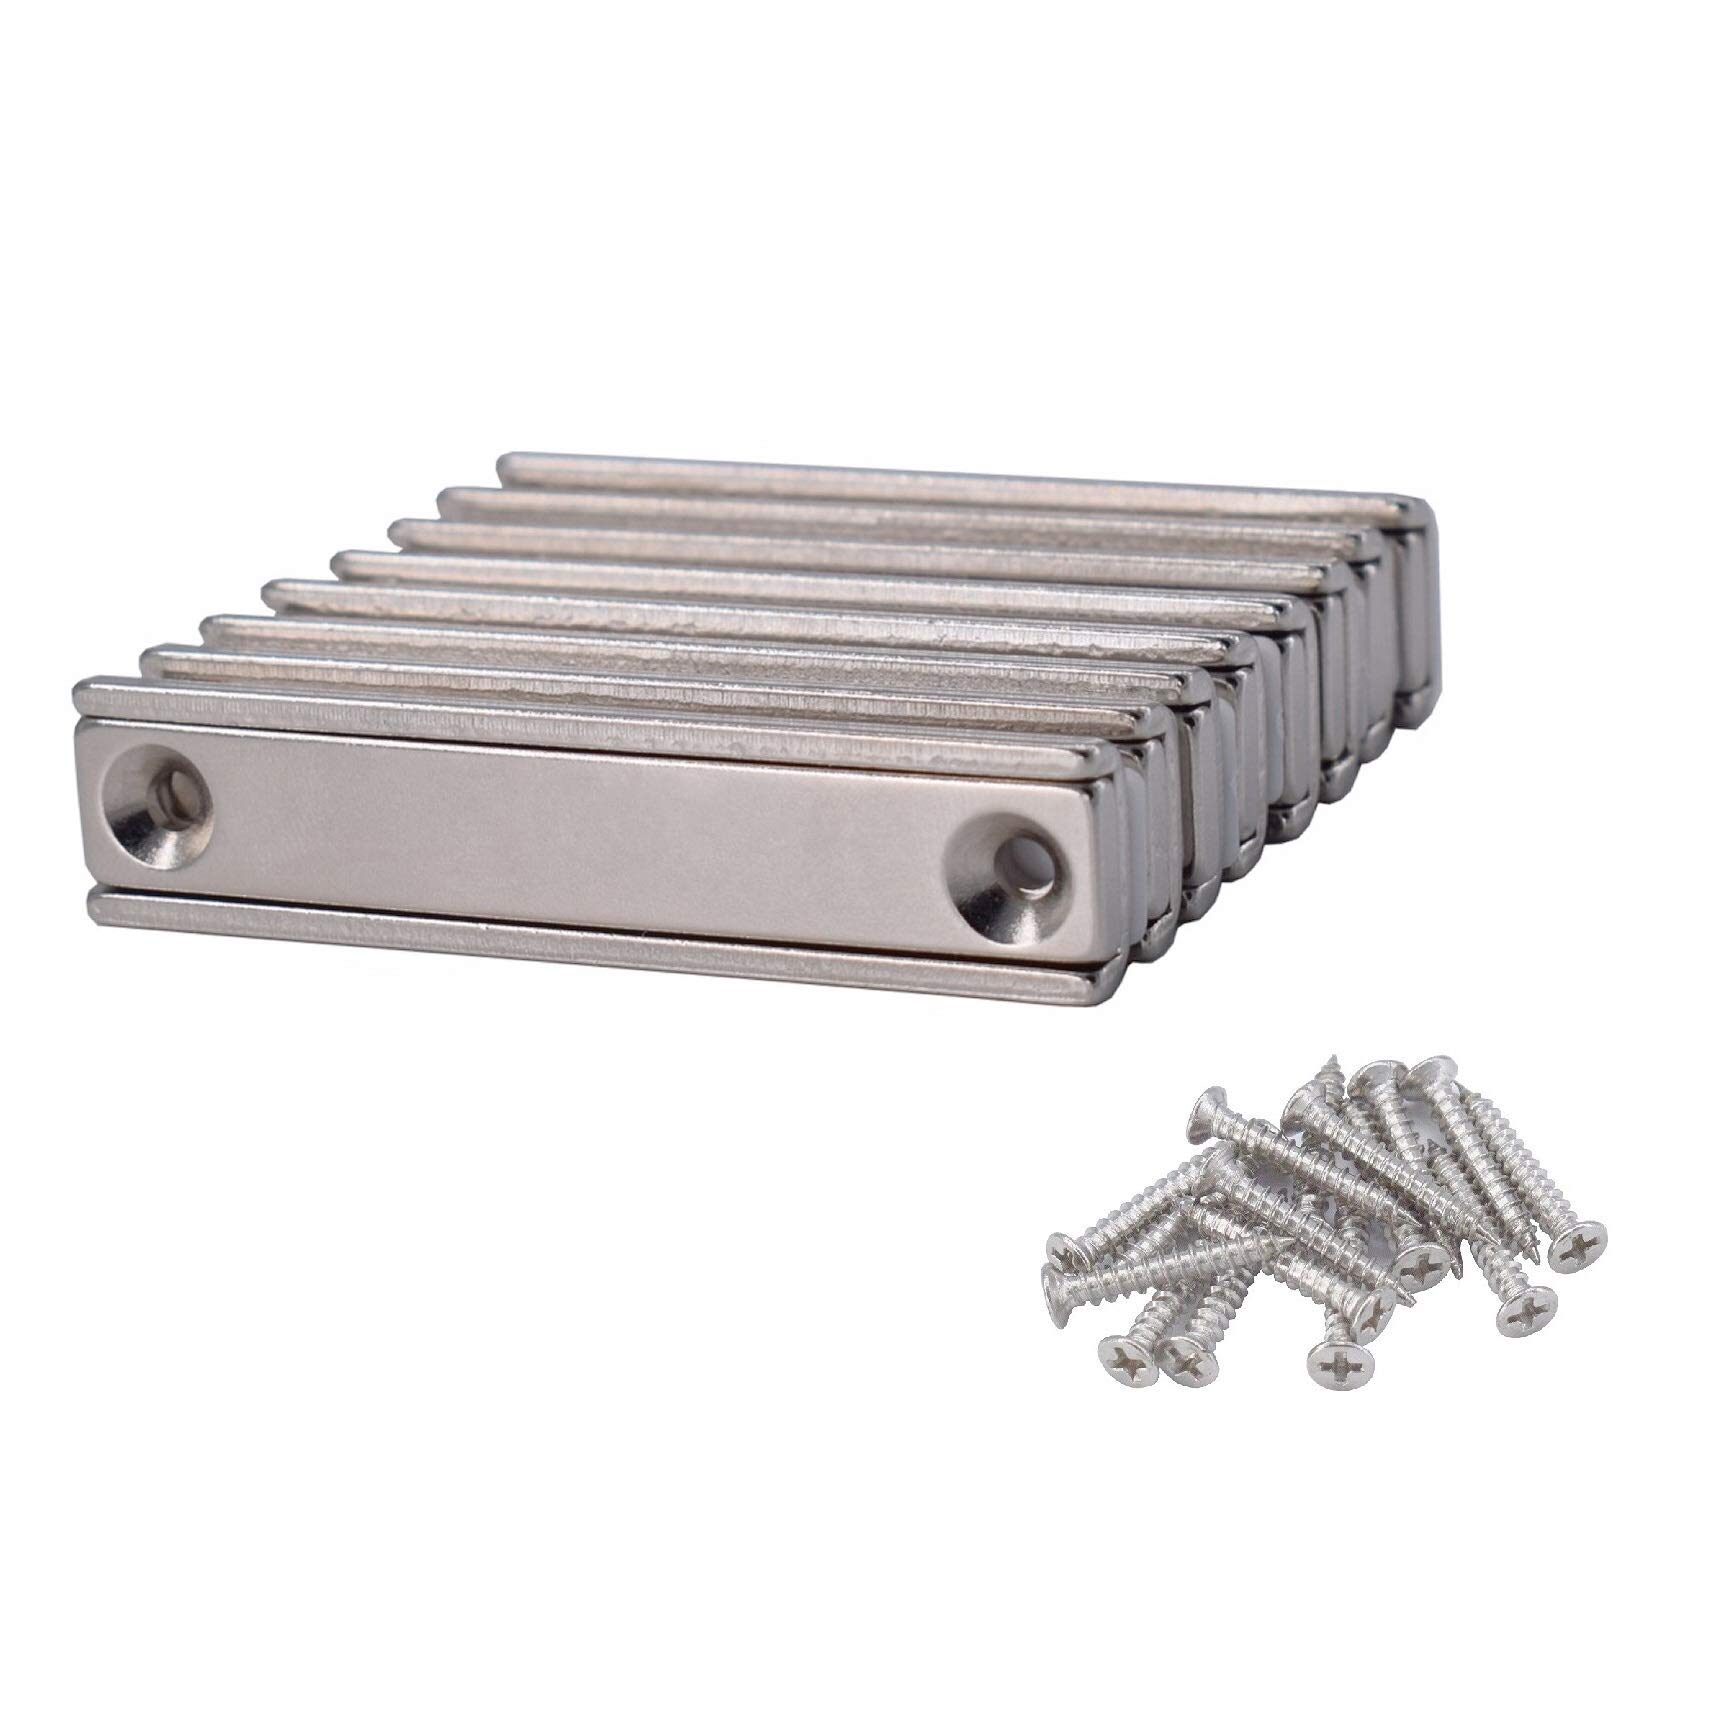 Strong Neodymium Rectangular Pot Magnets Counter Bore Countersunk Hole Mounting